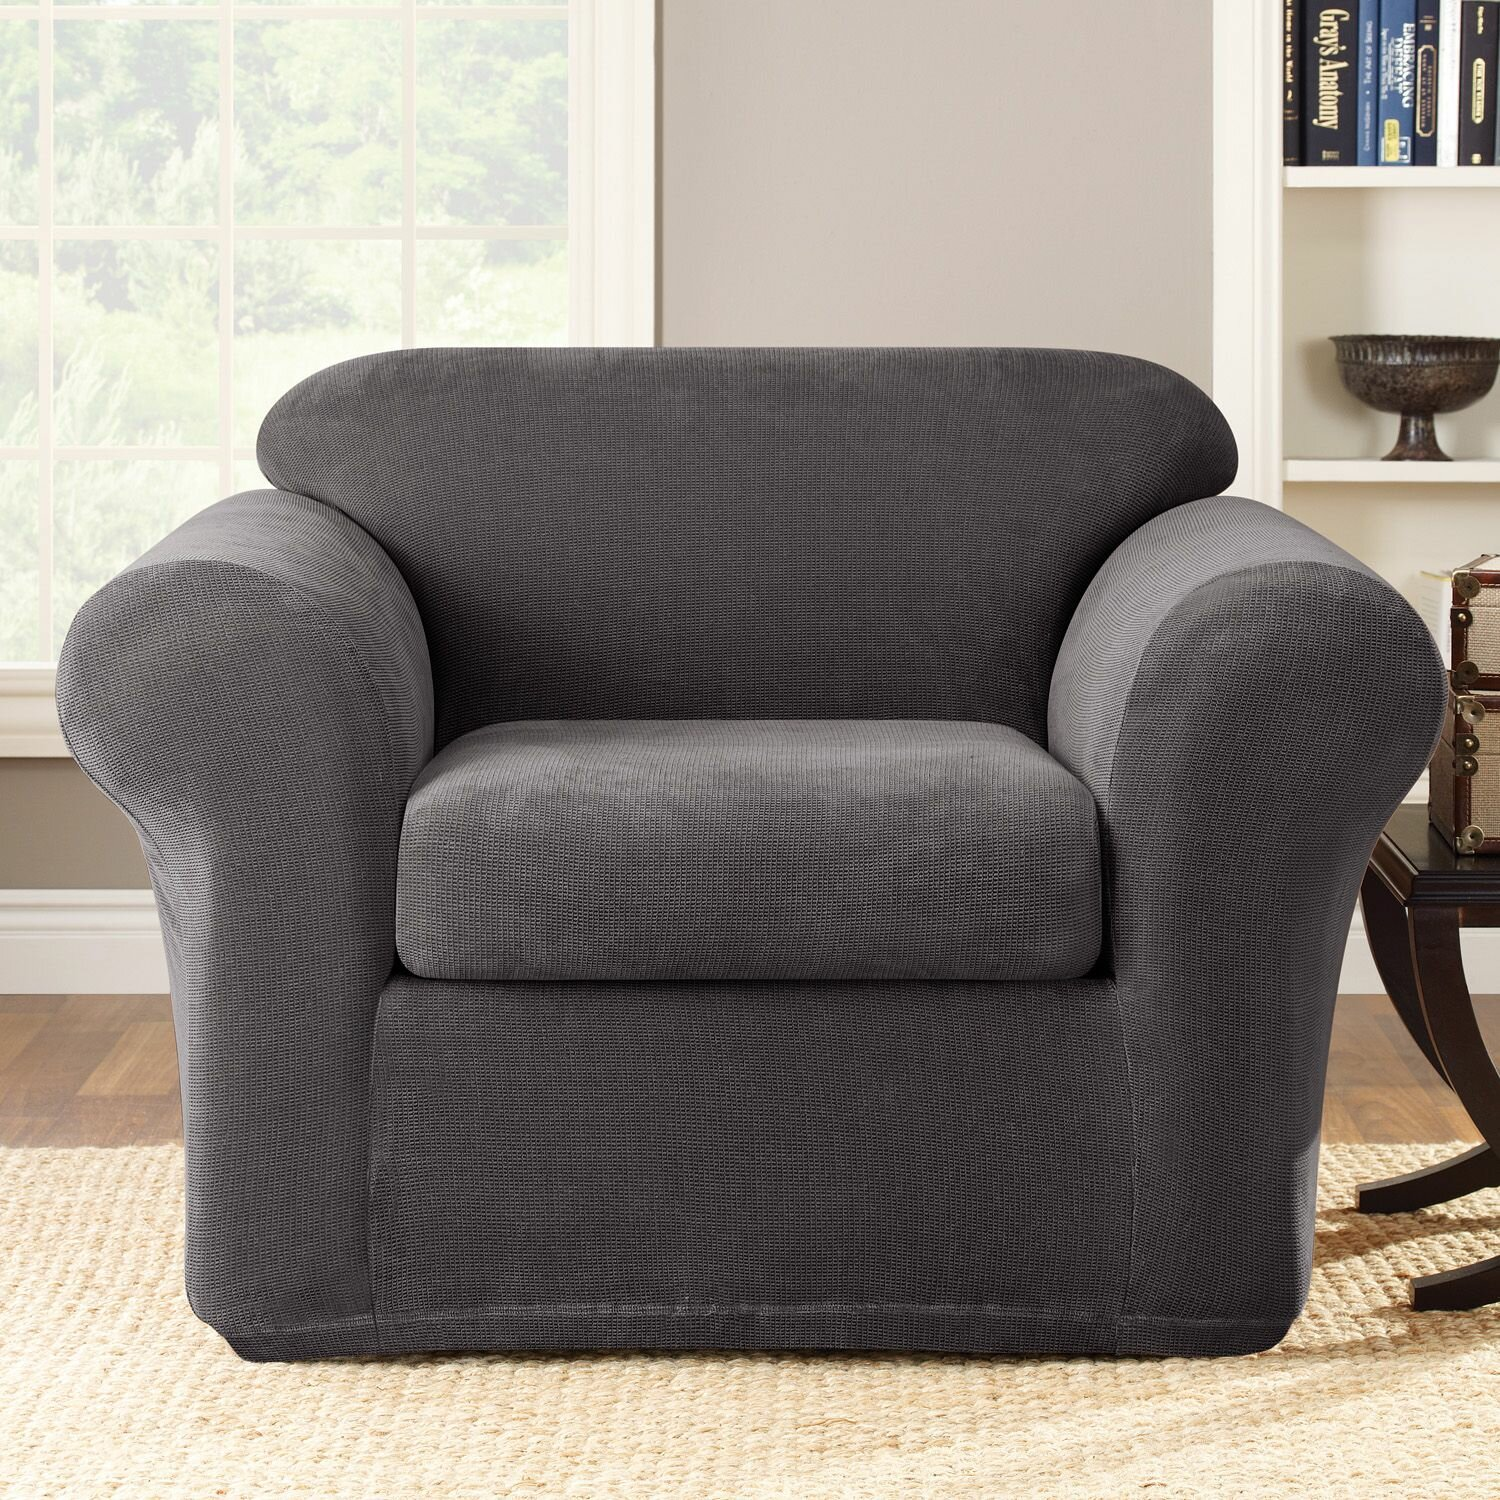 Furniture & Rug Chic Recliner Covers For Prettier Recliner Ideas